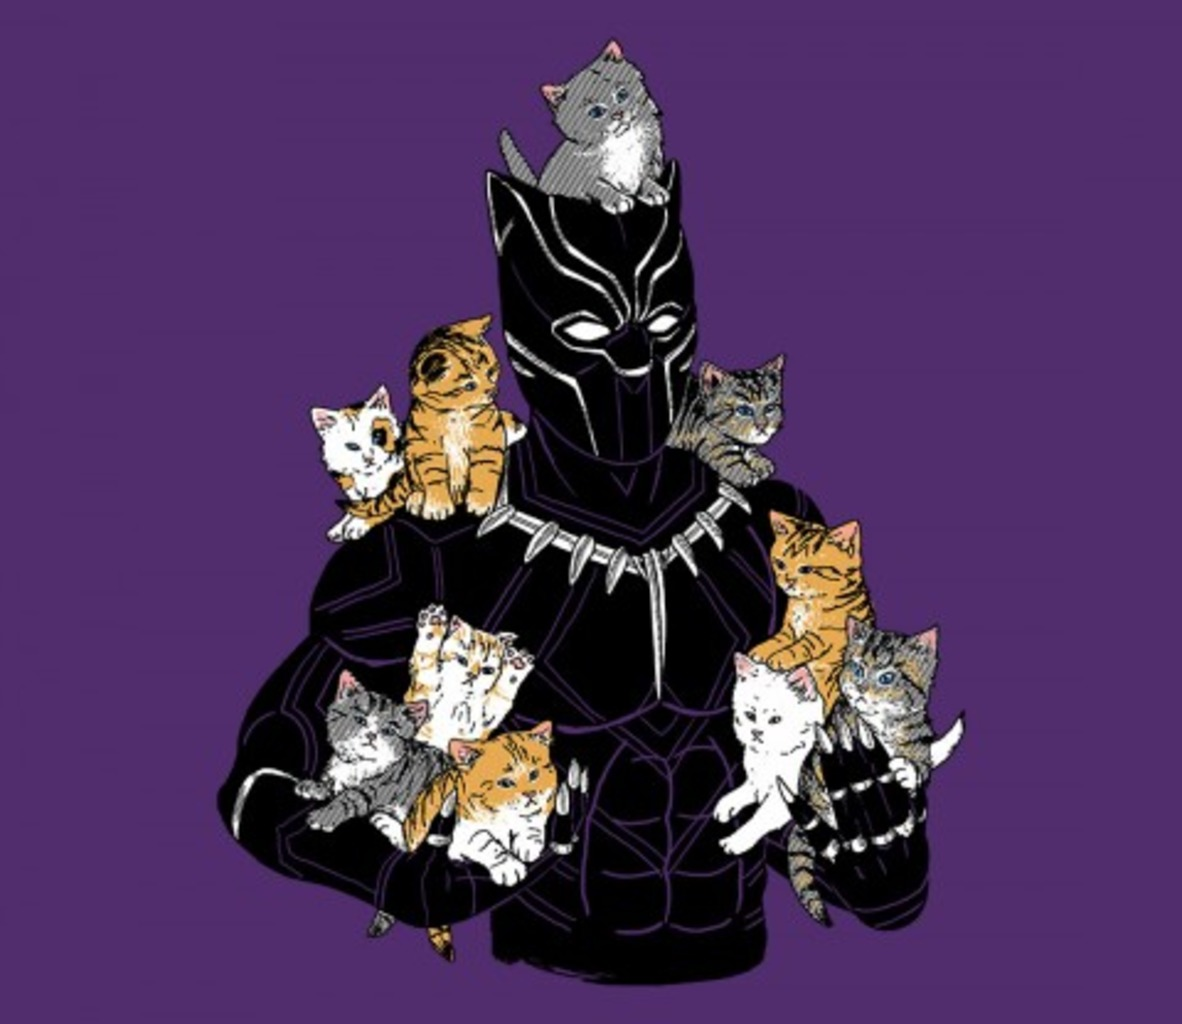 TeeFury: King of Kittens